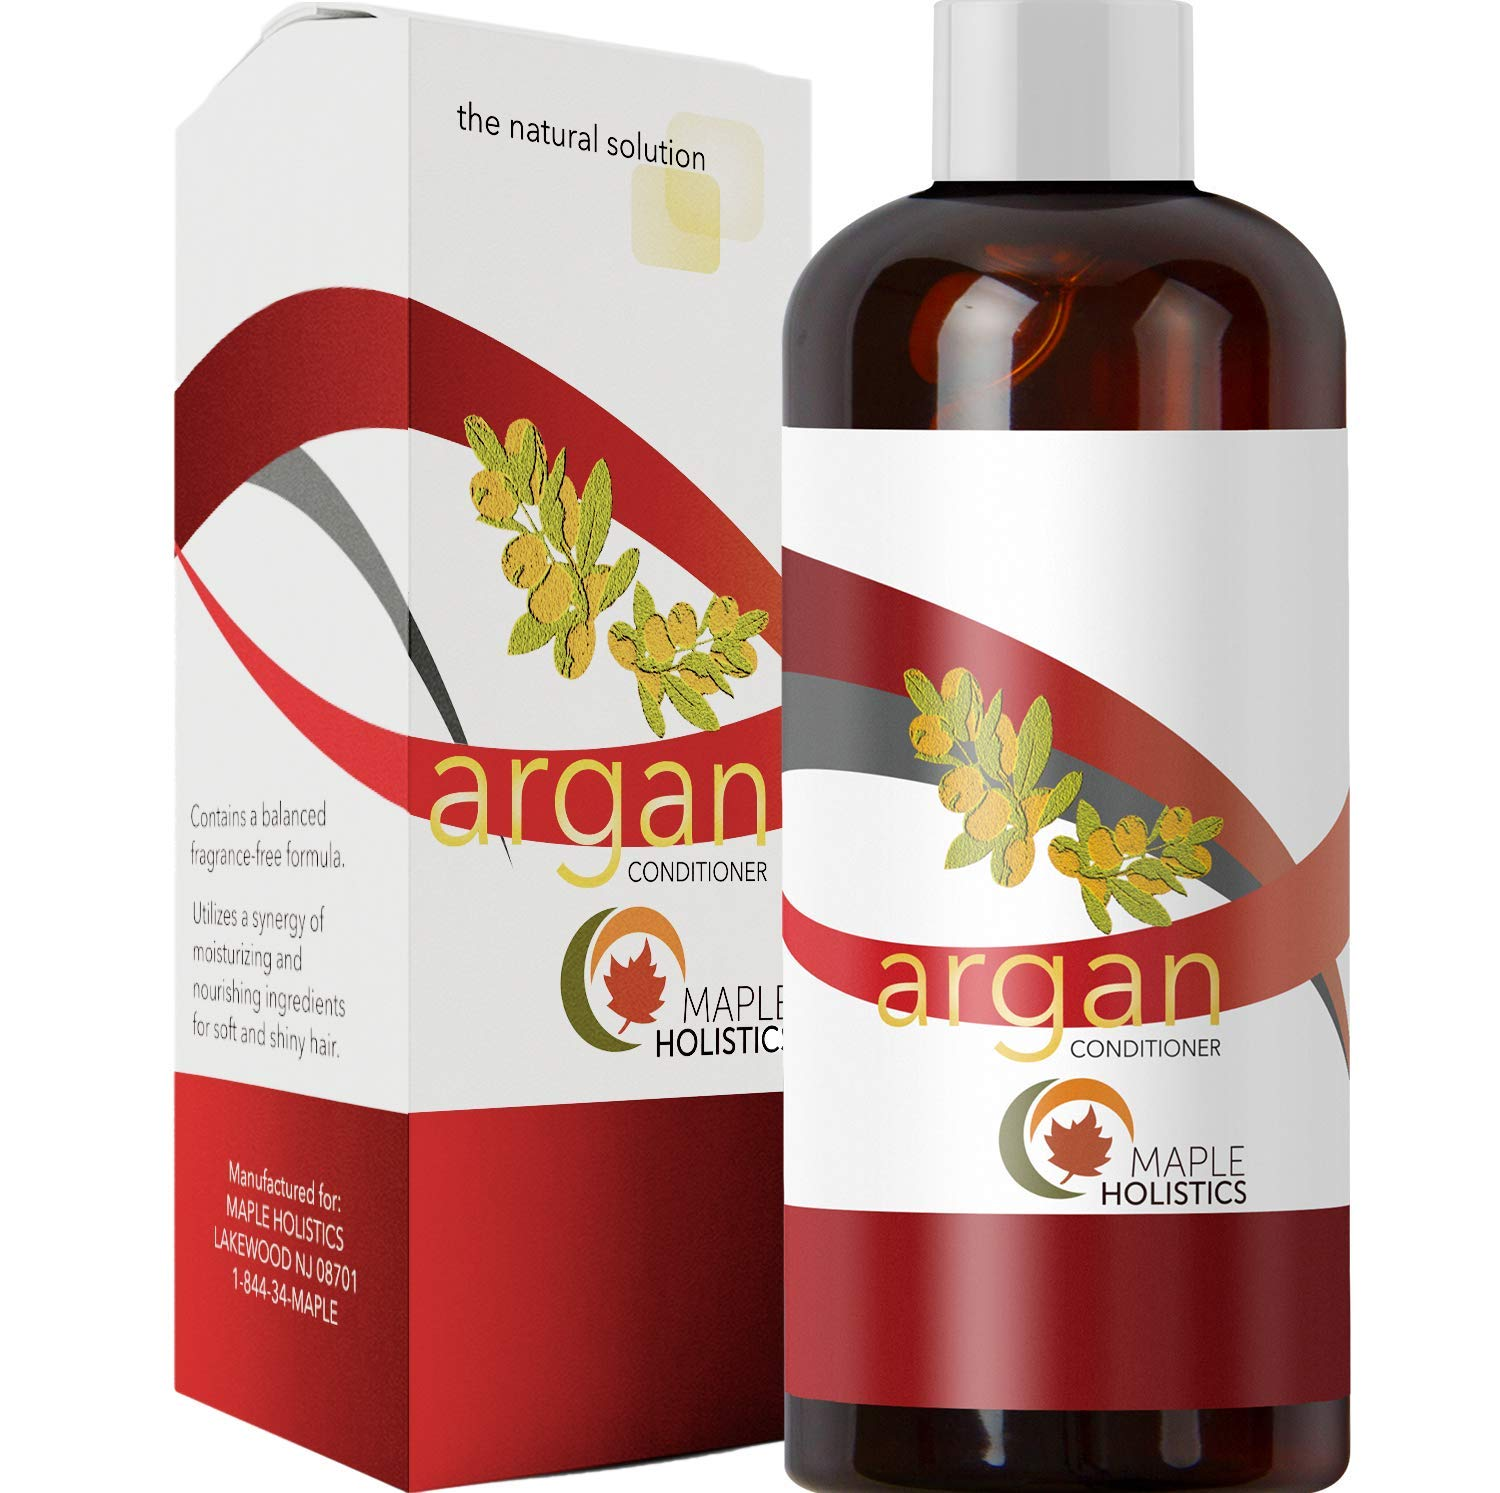 Argan Oil Deep Conditioner for Damaged Hair Pure Shea Butter Jojoba Oil Pomegranate for Women Men Kids Natural Sulfate Free Dry Hair Moisturizer Anti Breakage Thickening Family Size -16 oz